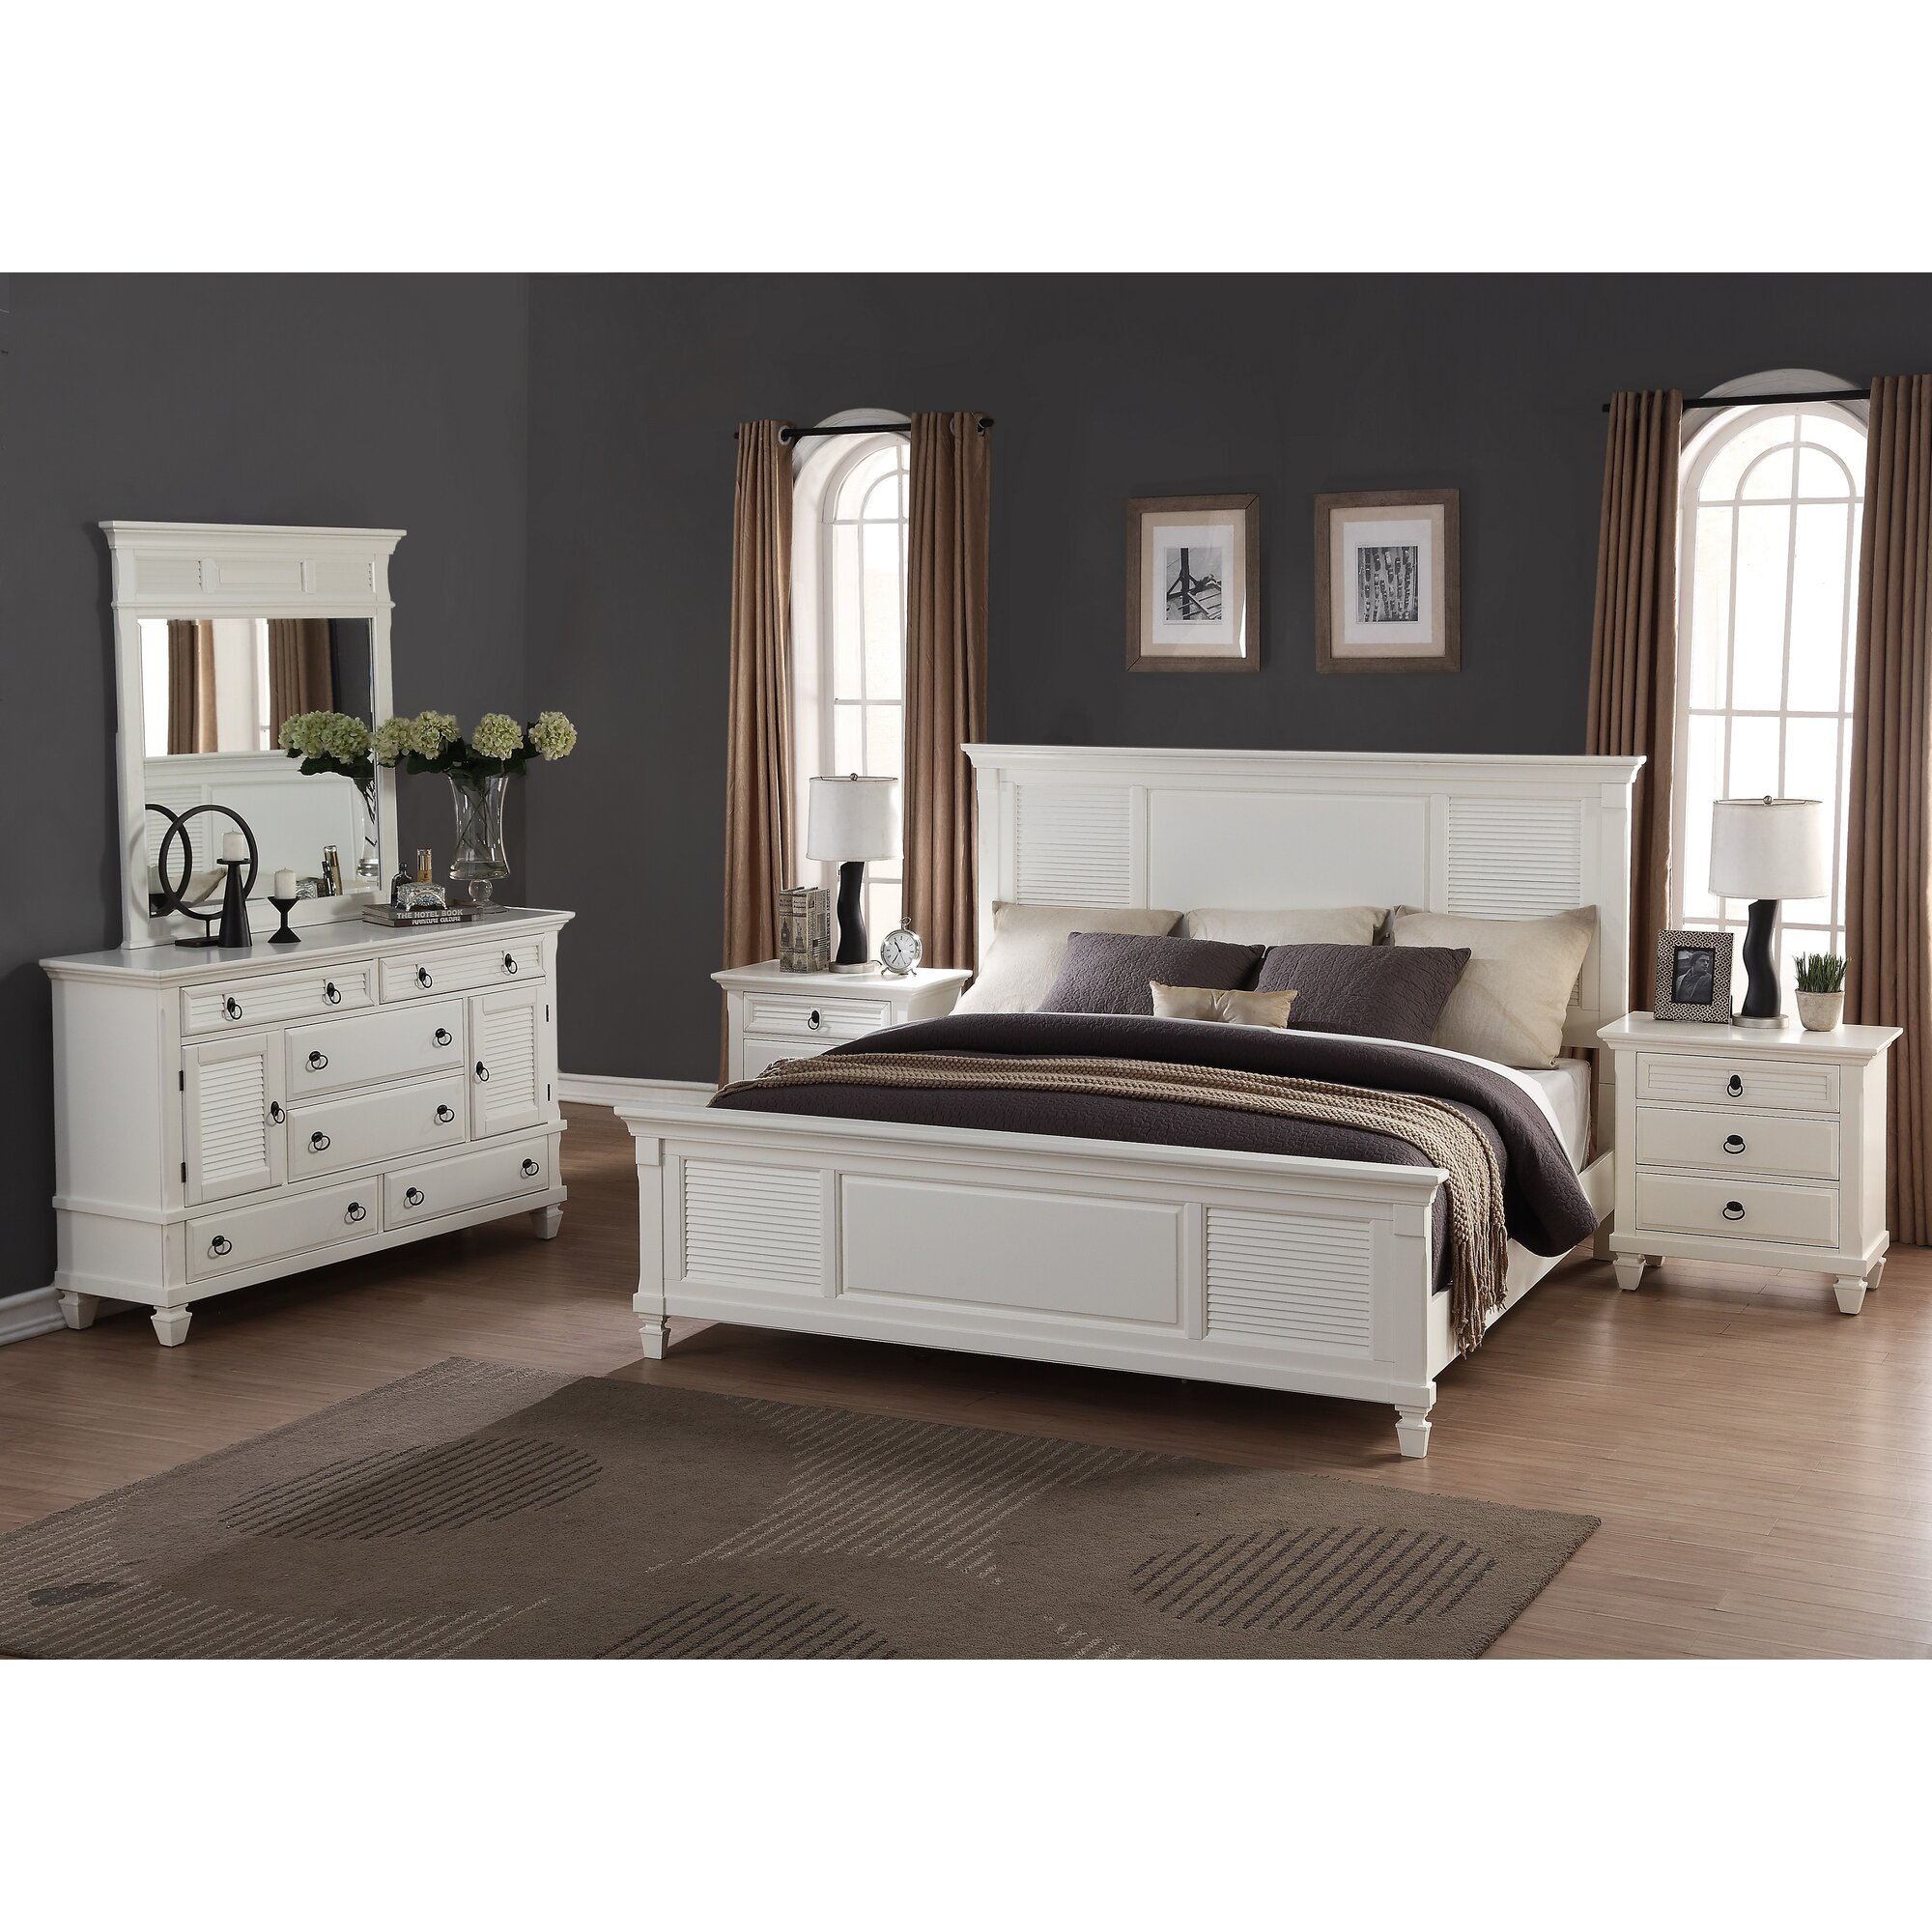 roundhill furniture regitina panel 5 piece bedroom set reviews wayfair. Black Bedroom Furniture Sets. Home Design Ideas